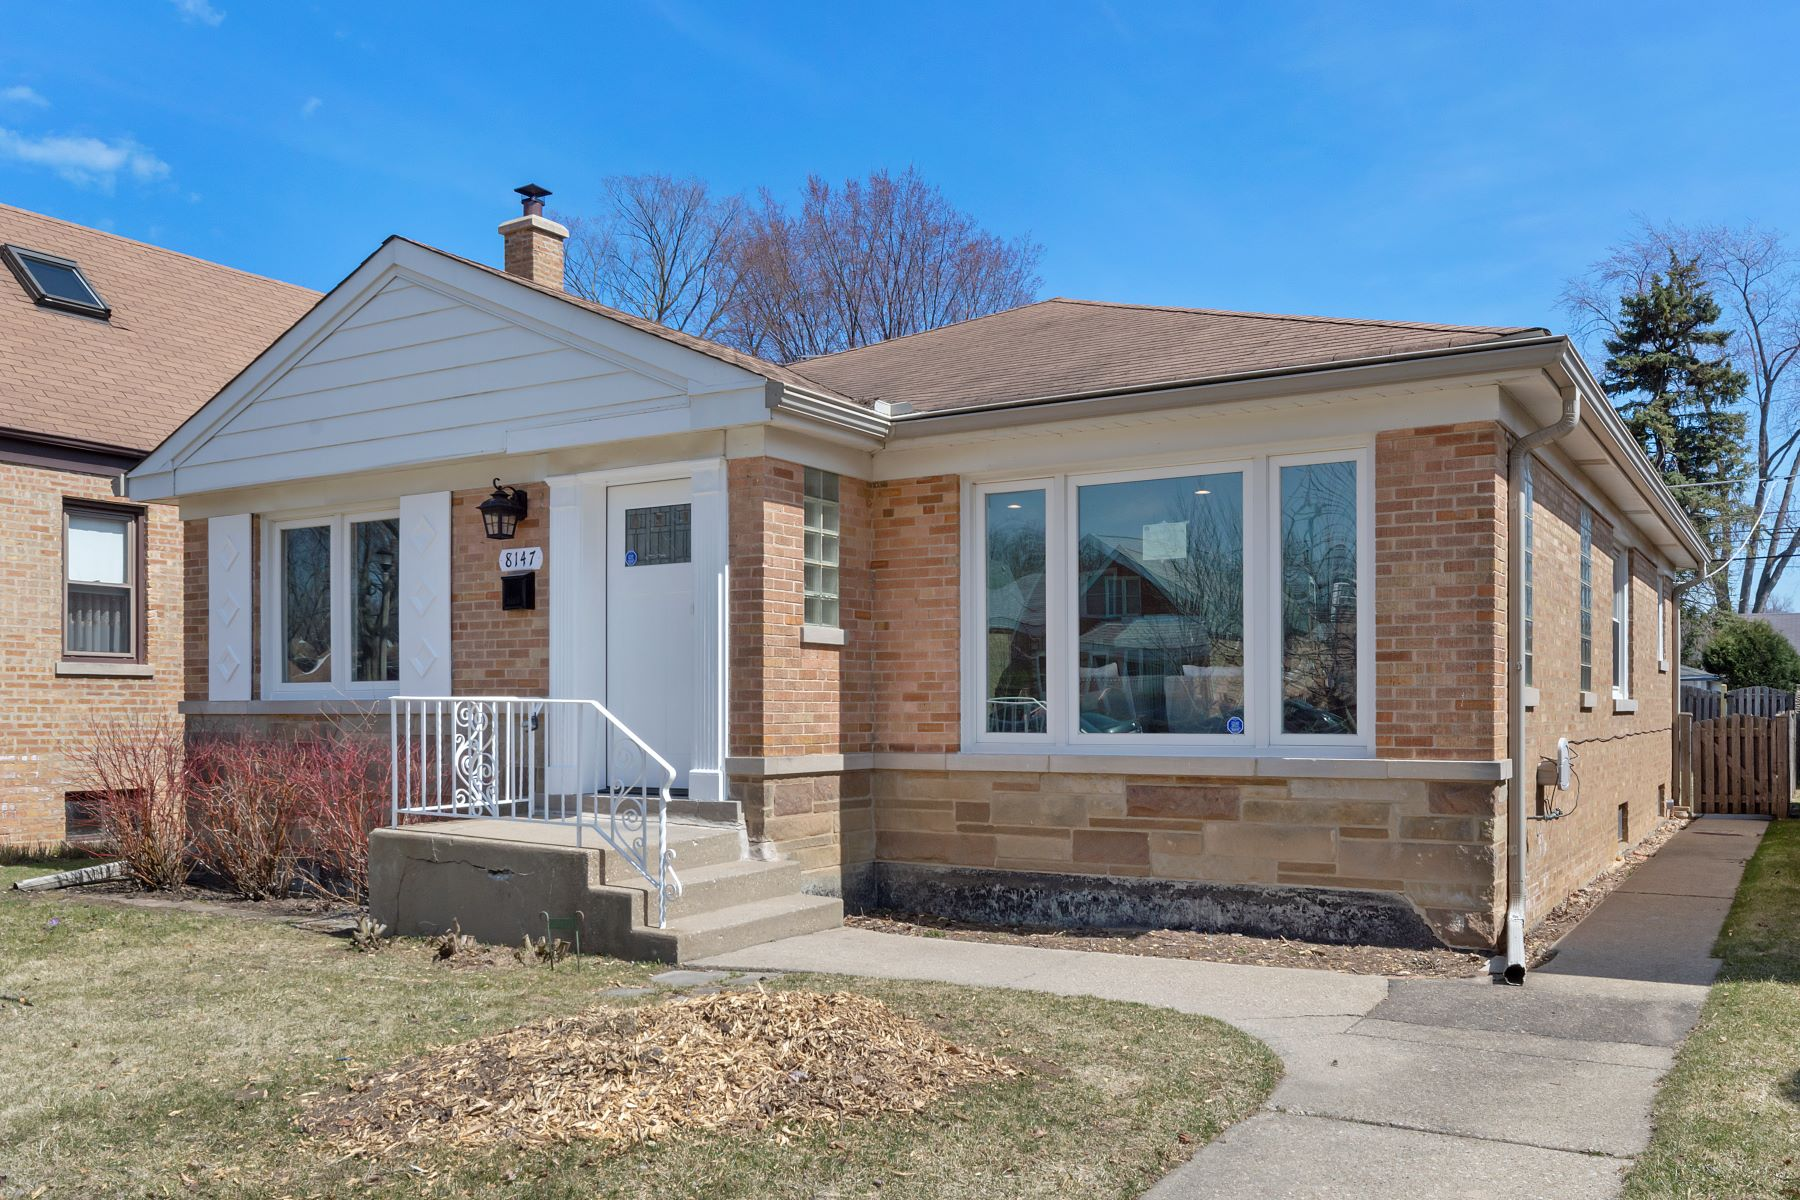 Single Family Homes for Active at Charming Brick Rehab 8147 Lowell Avenue Skokie, Illinois 60076 United States